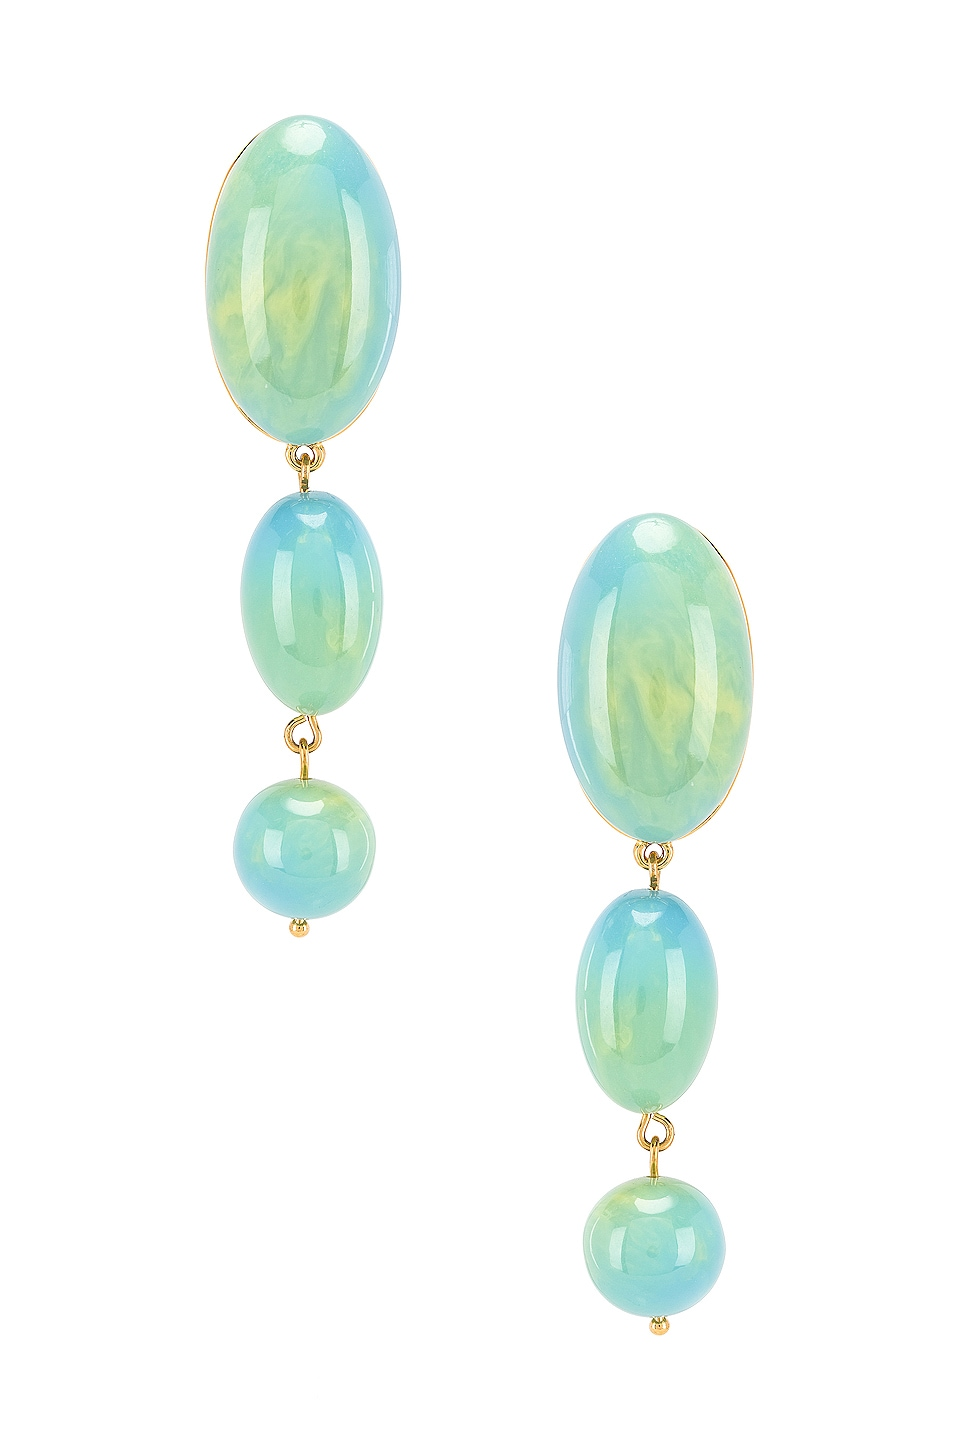 Lele Sadoughi Mini Bubble Drop Earrings in Aqua